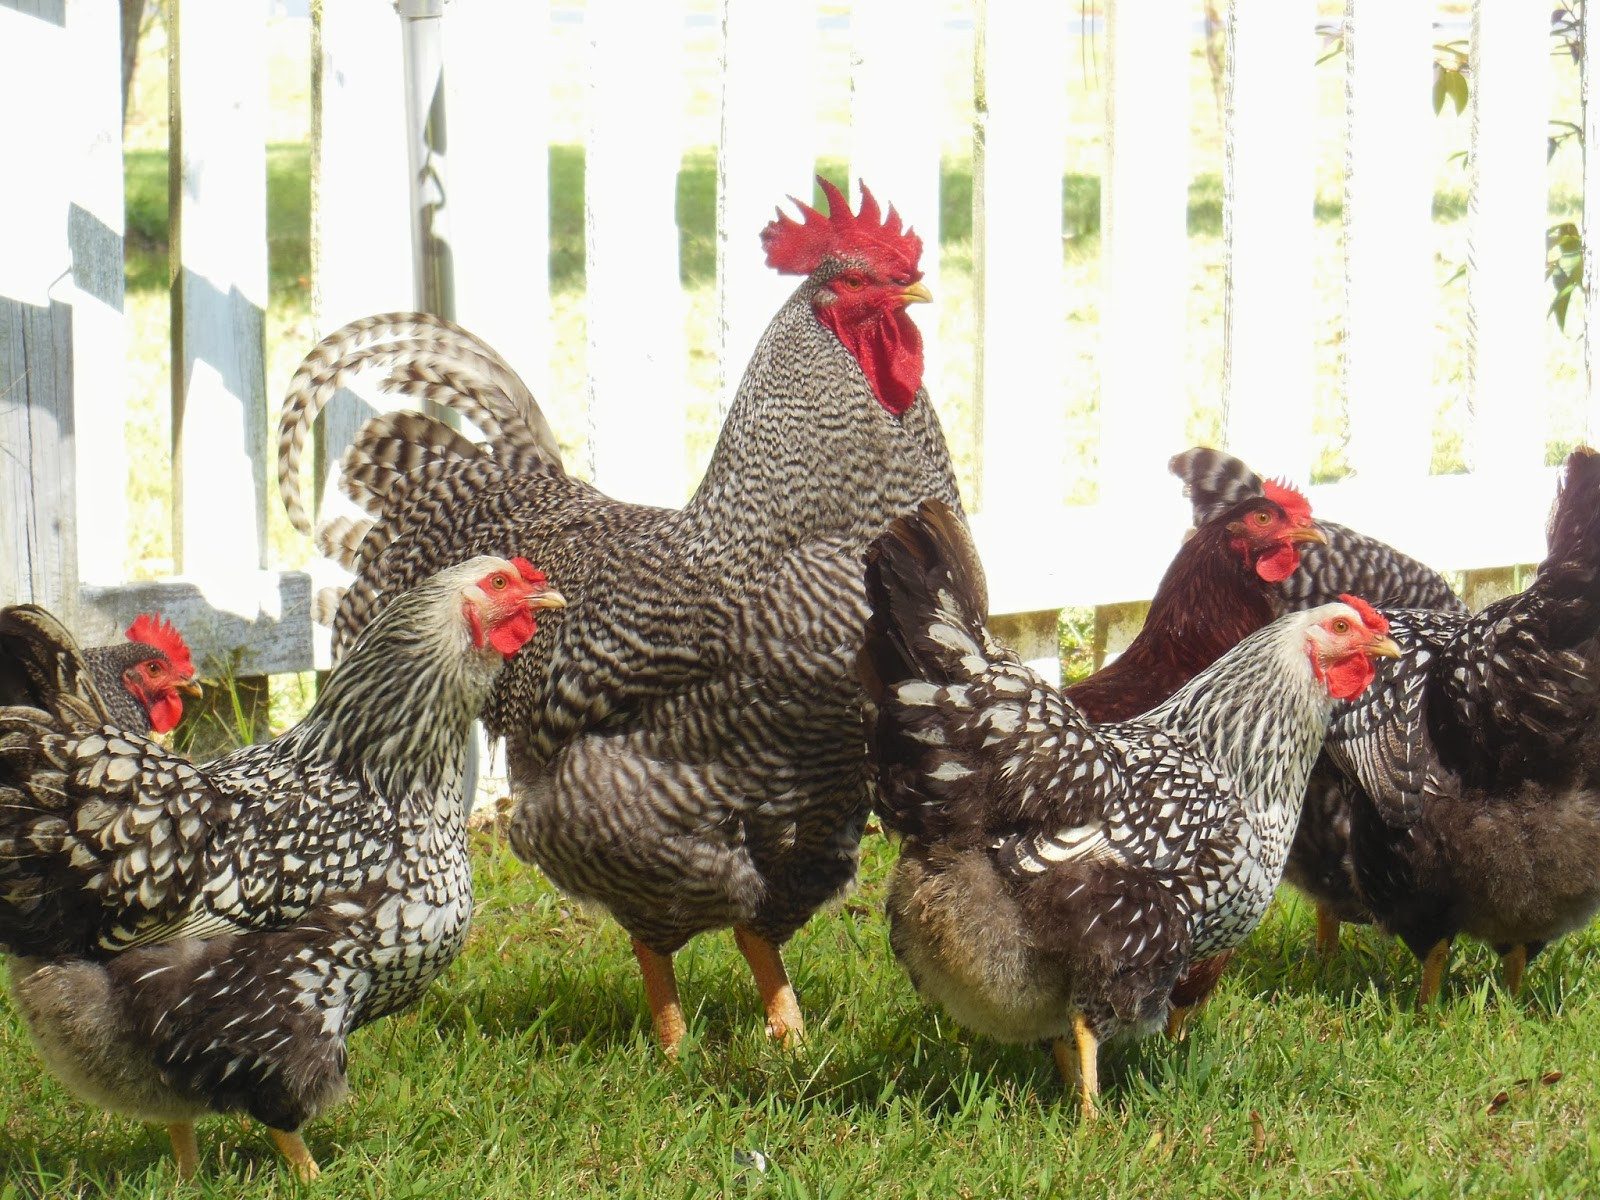 Best ideas about Raising Backyard Chickens . Save or Pin Raising Backyard Chickens for Eggs Part 1 – Getting Baby Now.